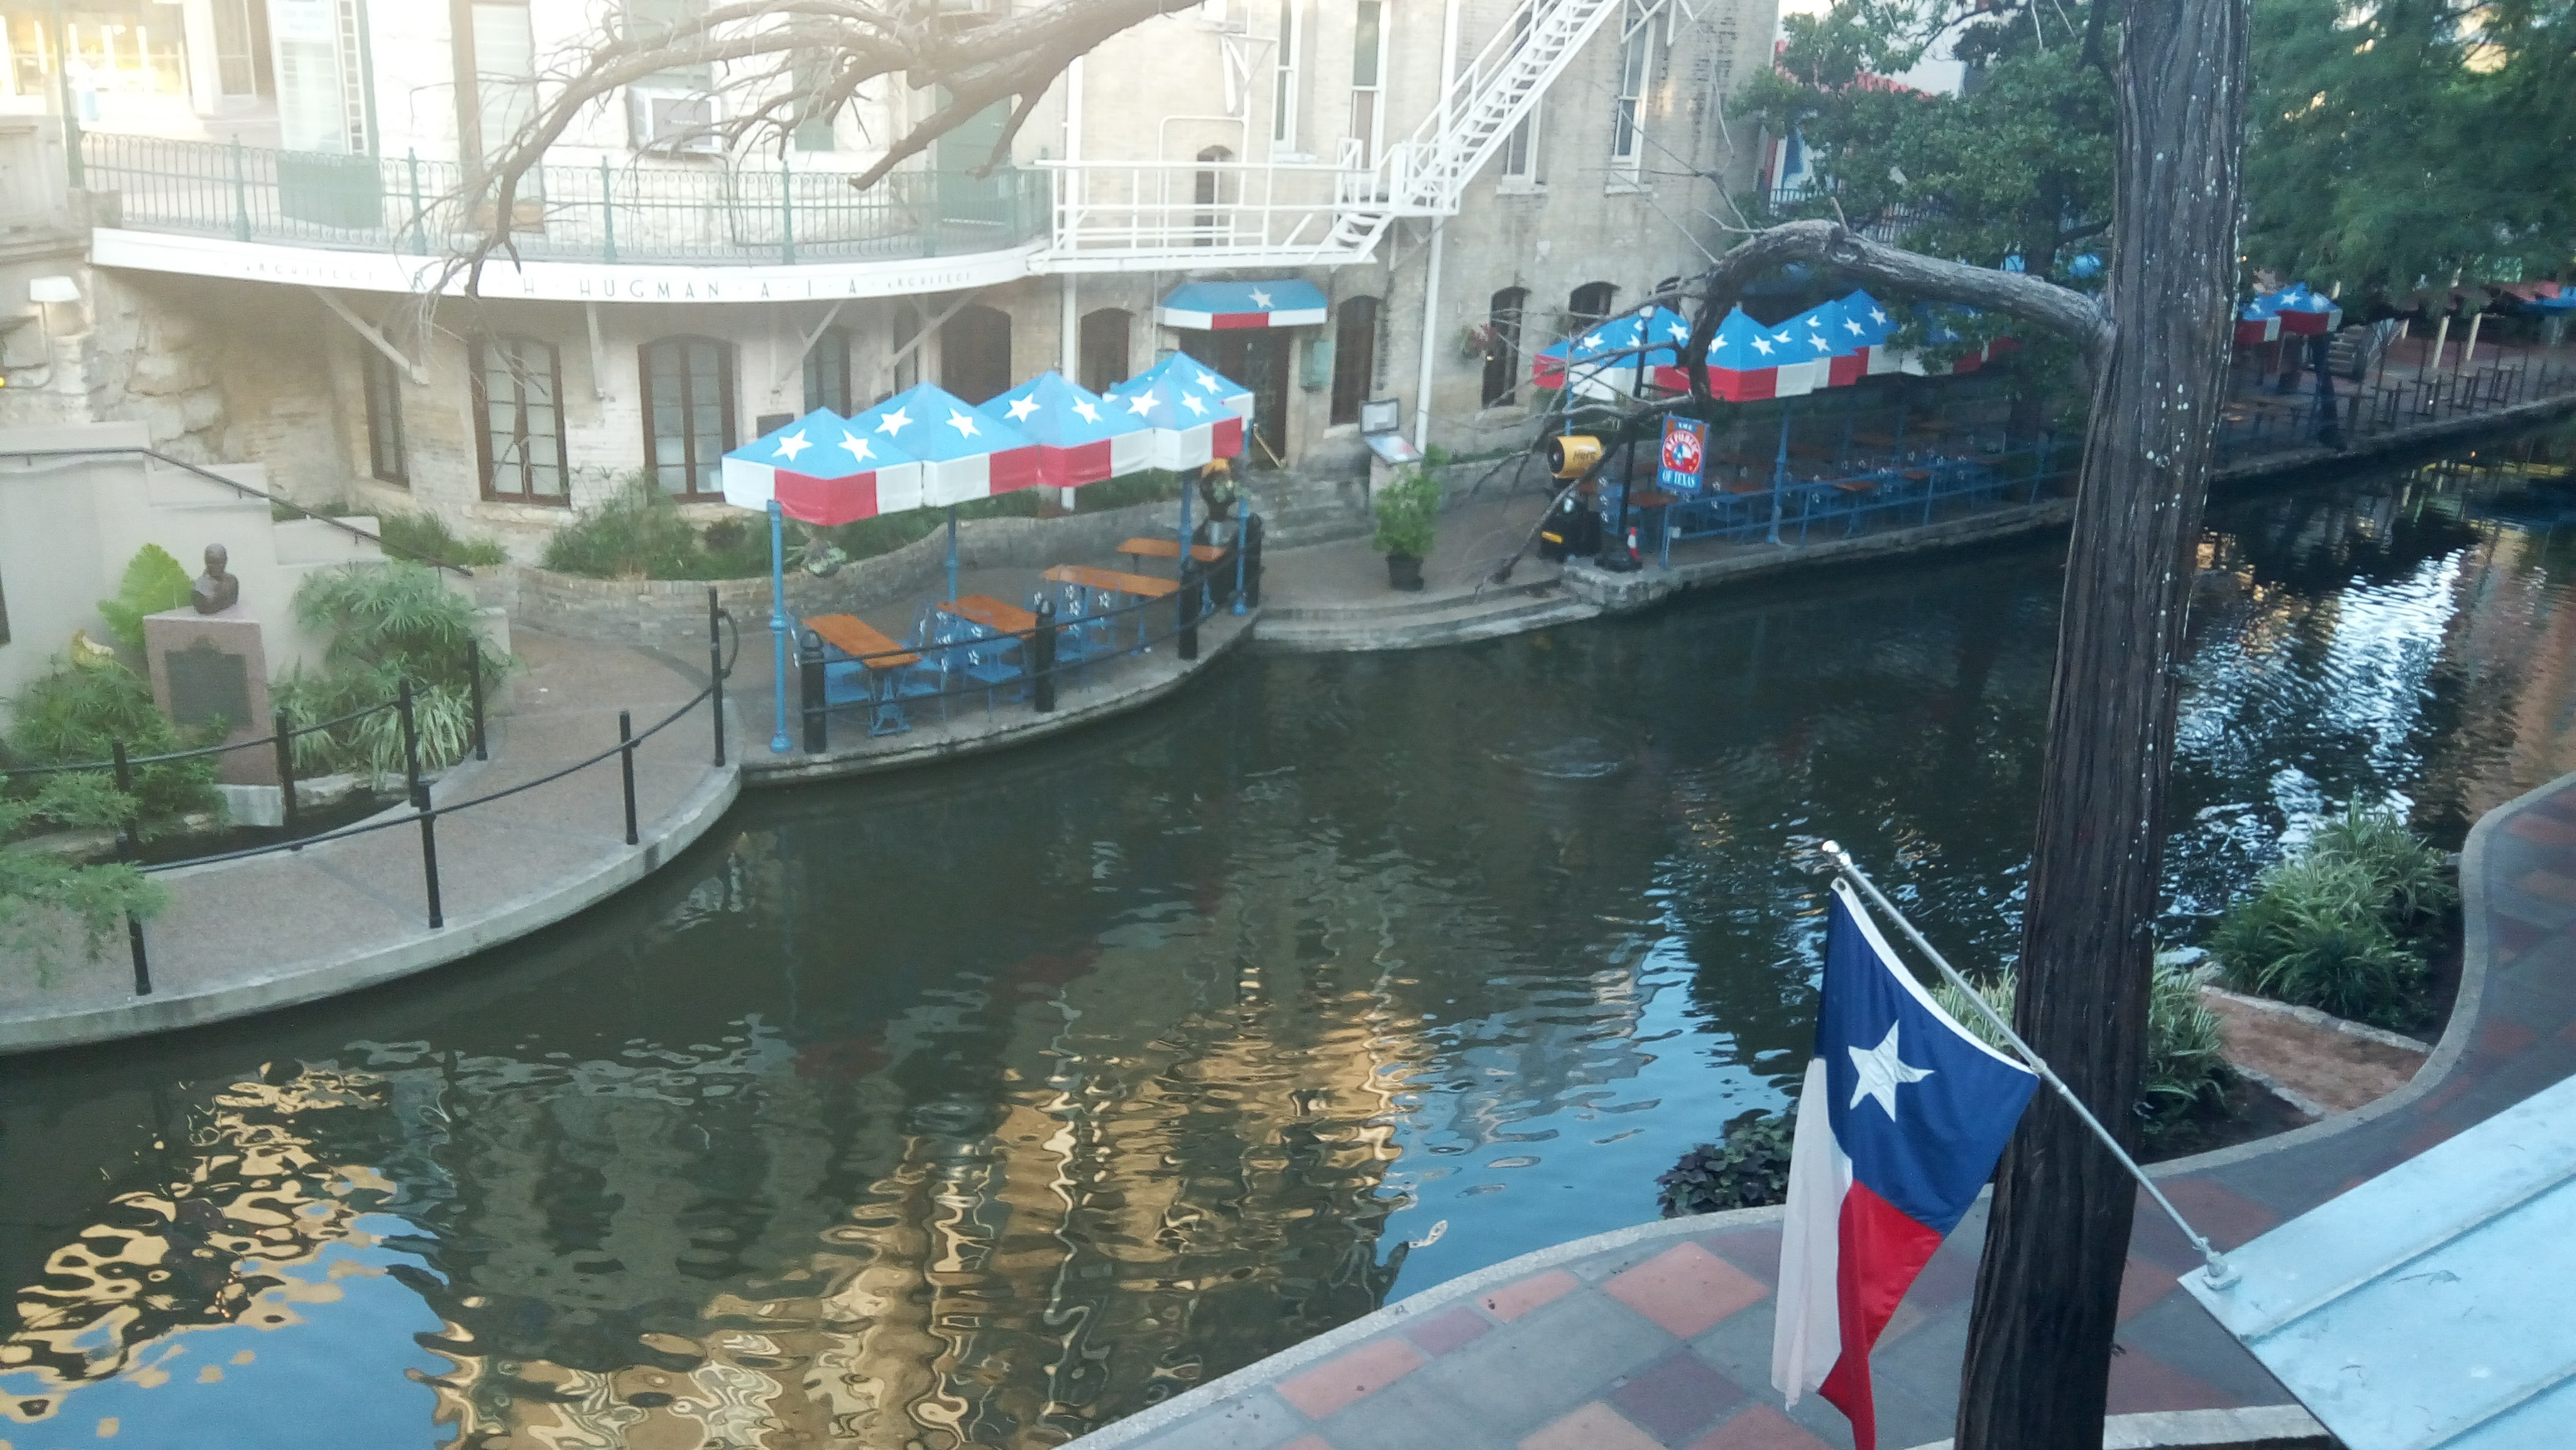 The Republic of Texas Riverwalk